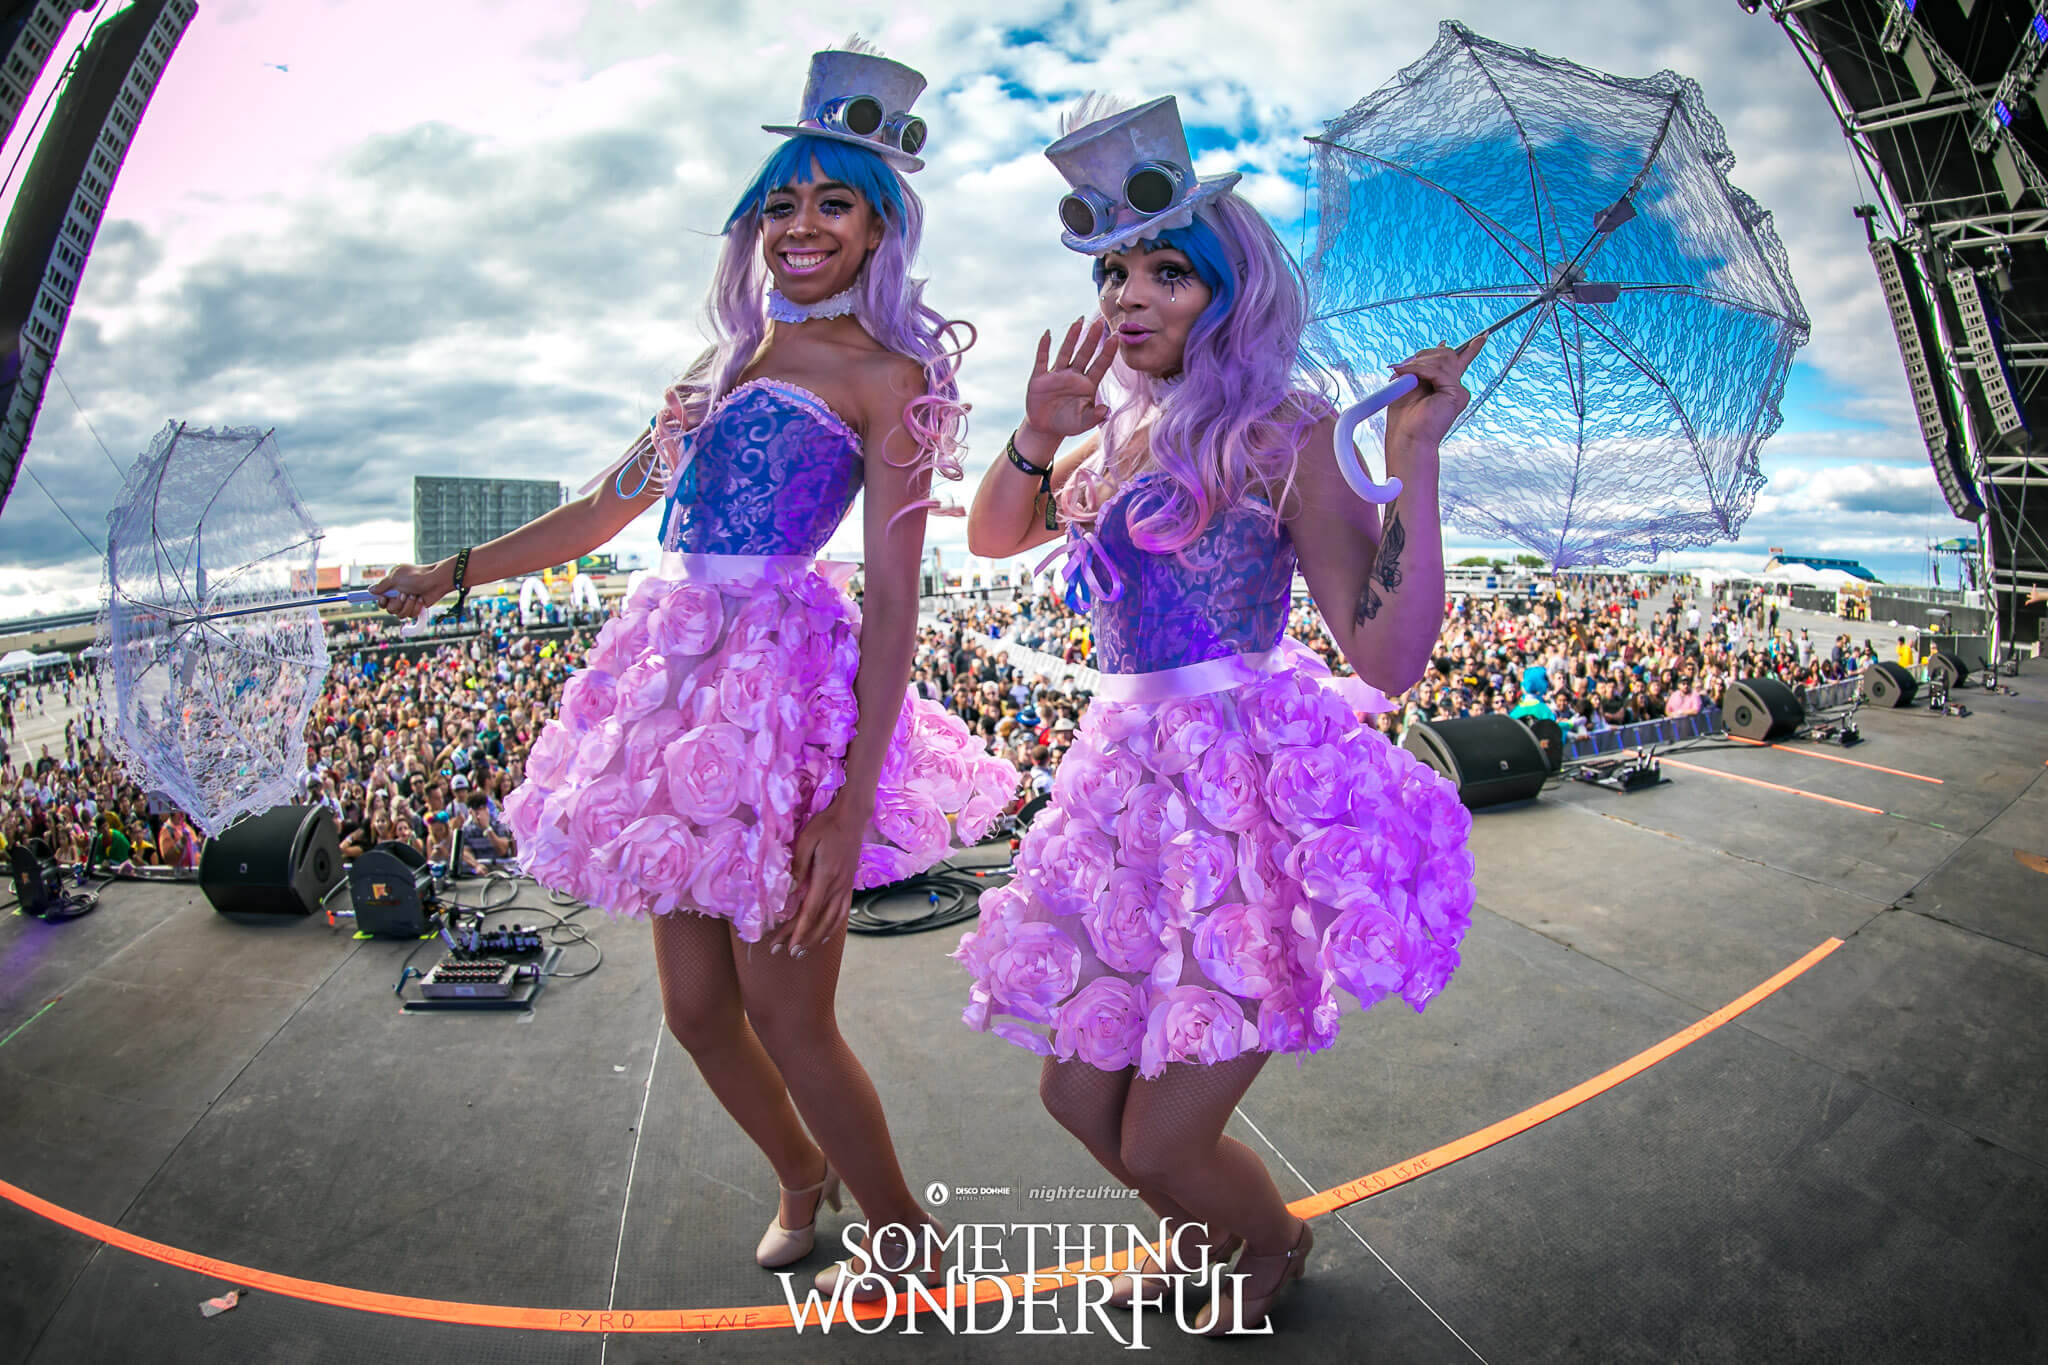 stage performers at something wonderful